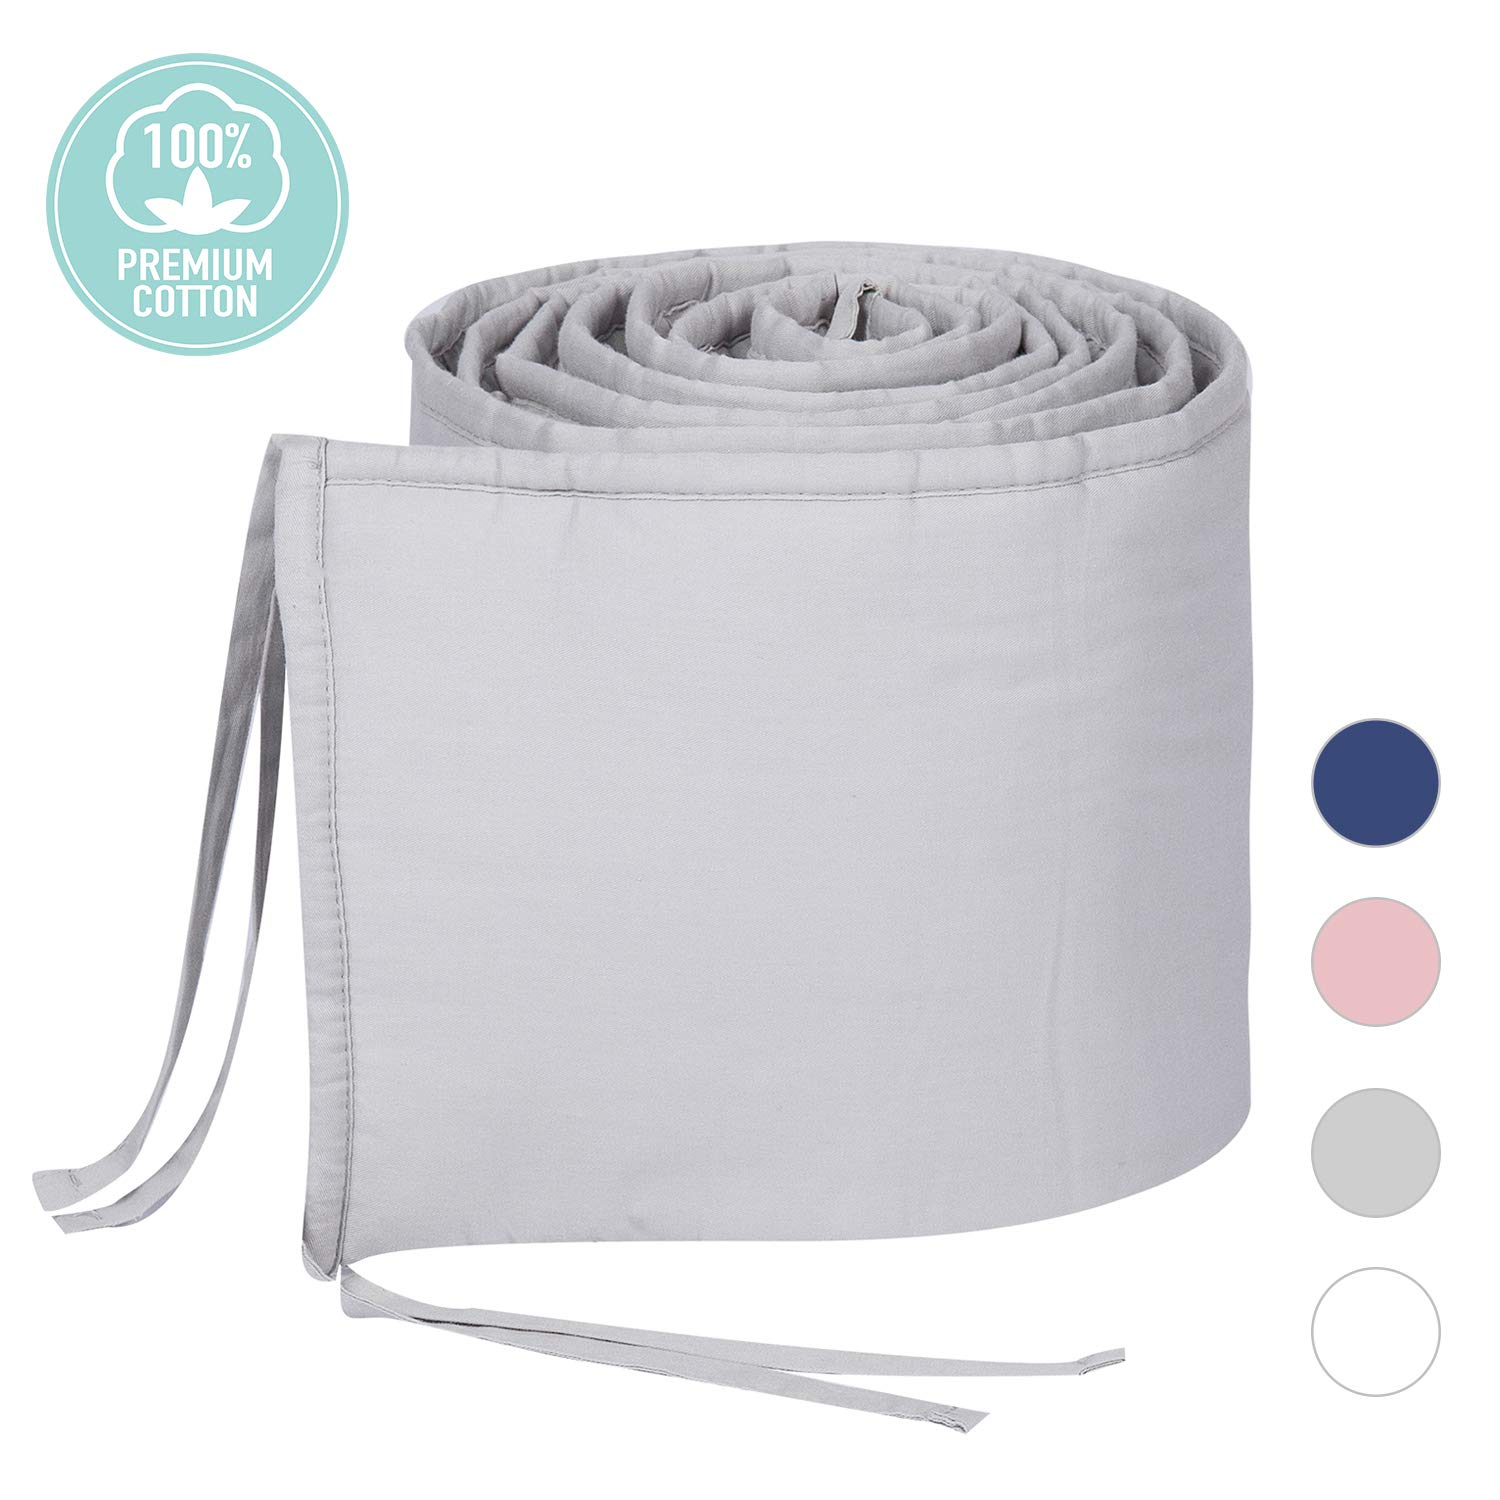 TILLYOU Cotton Collection No-Gap Nursery Mini Crib Bumper Pads for Babies 24x38, Ultra Soft & Machine Washable Padded Crib Liner for Portable Cribs, 1-Piece Safe Crib Padding Protector, Pale Gray